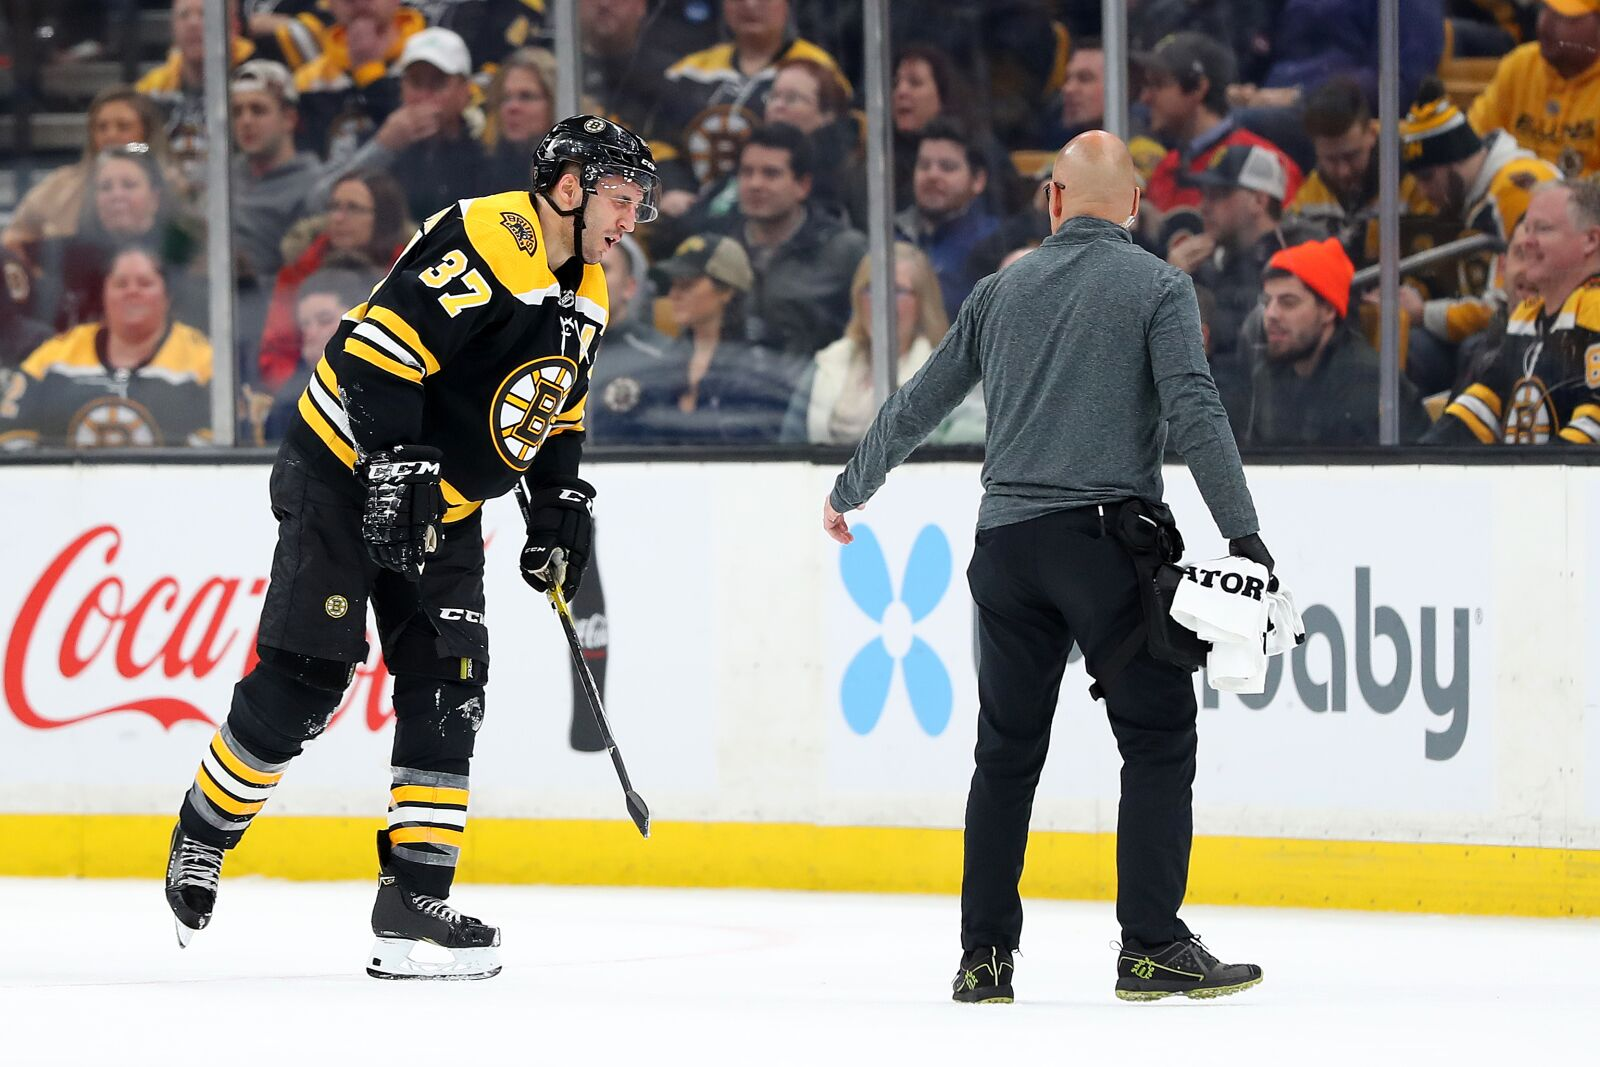 Boston Bruins: Is Patrice Bergeron at full fitness heading into camp?